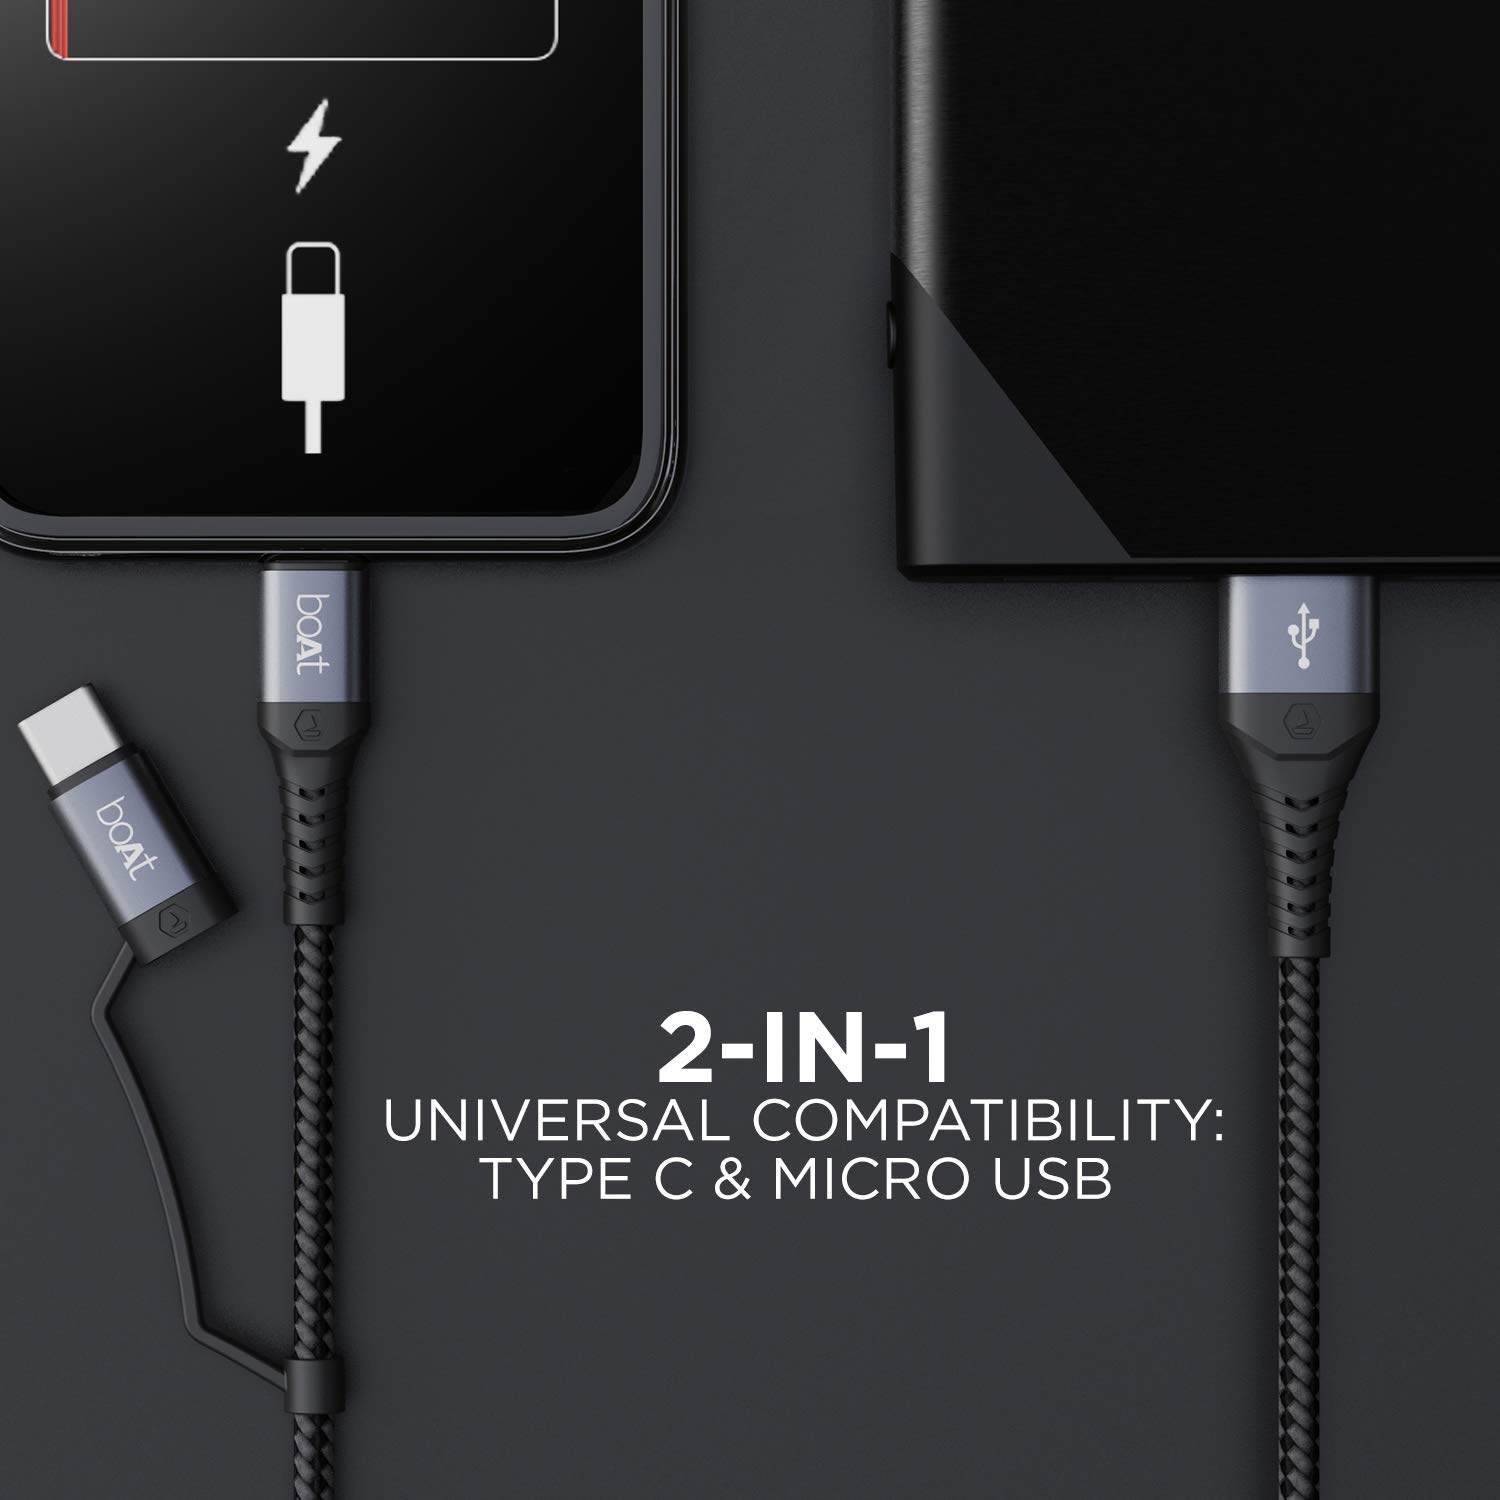 Boat Deuce Usb 300 2 in 1 Fast Charging Cable Launched in India